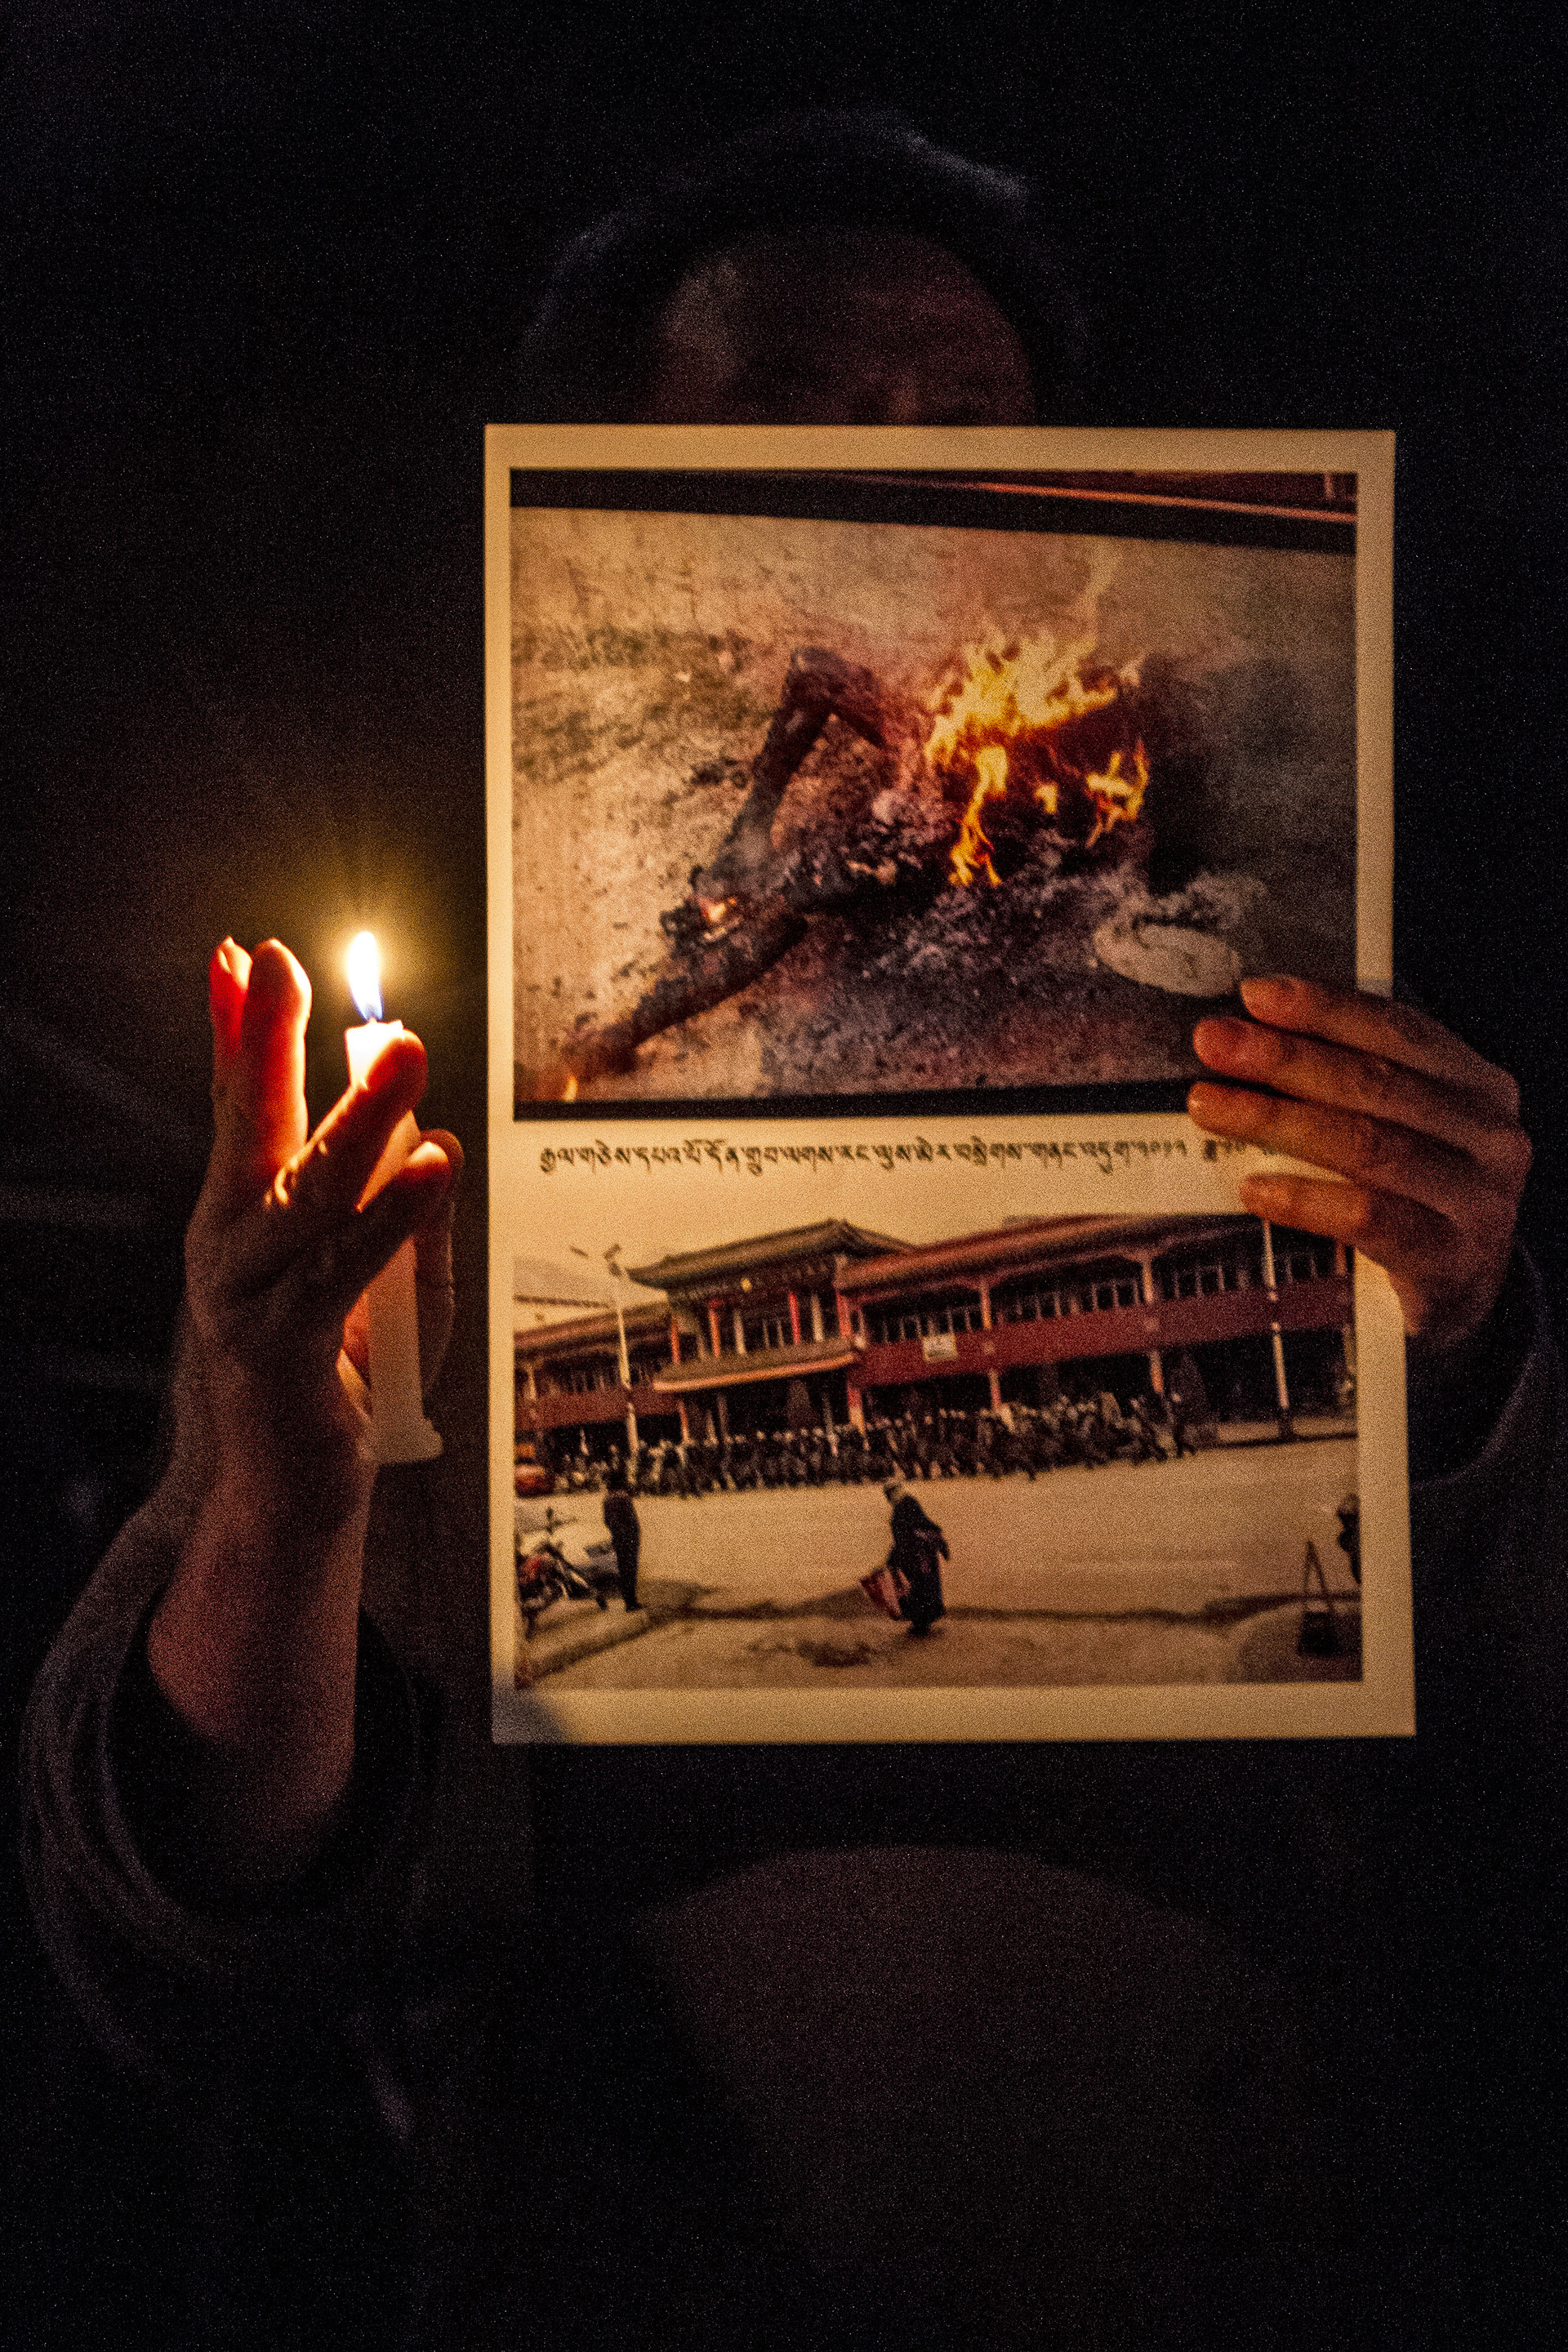 Normal   0           false   false   false     EN-US   X-NONE   X-NONE                                                                                 22 October, 2012 – Tibetan Childrens Village School, McLeod Ganj   A Tibetan protestor holds images of 61 year old Dhondup who set himself alight in Labrang, Tibet.  Dhondup's self-immolation was the 57th in ongoing protests against the Chinese occupation of Tibet.